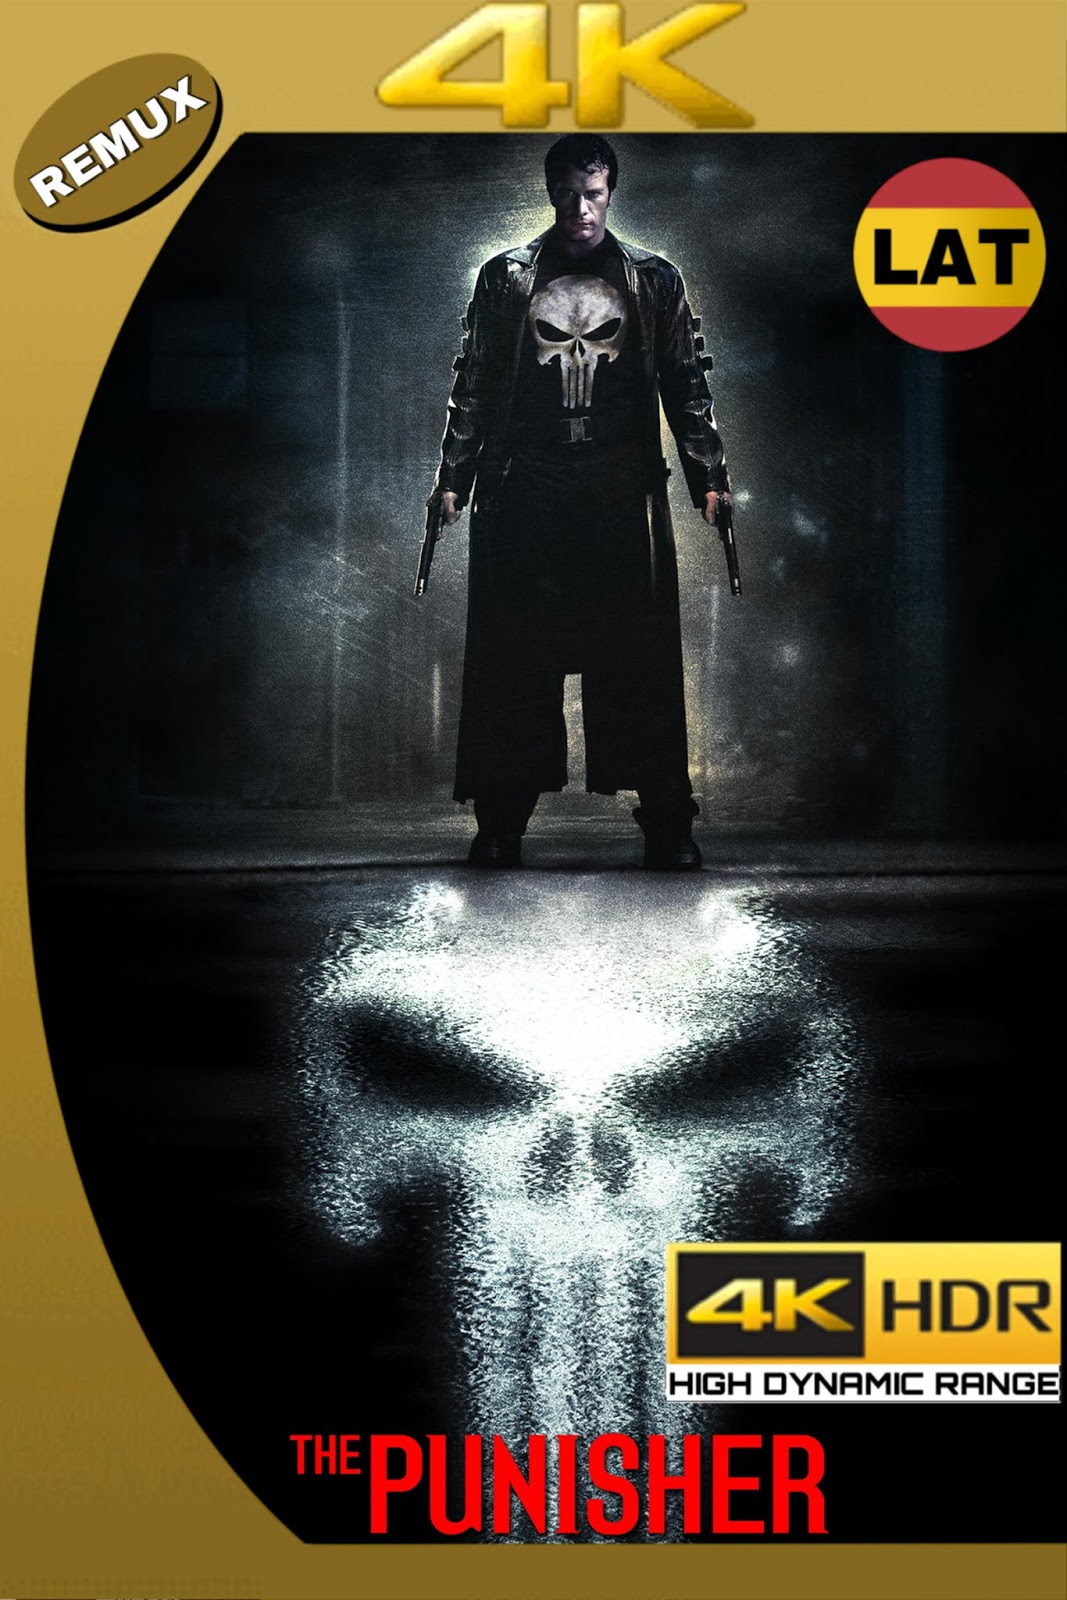 THE PUNISHER 2004 LAT-ING ULTRA HD 4K HDR BDREMUX 2160P 73GB.mkv